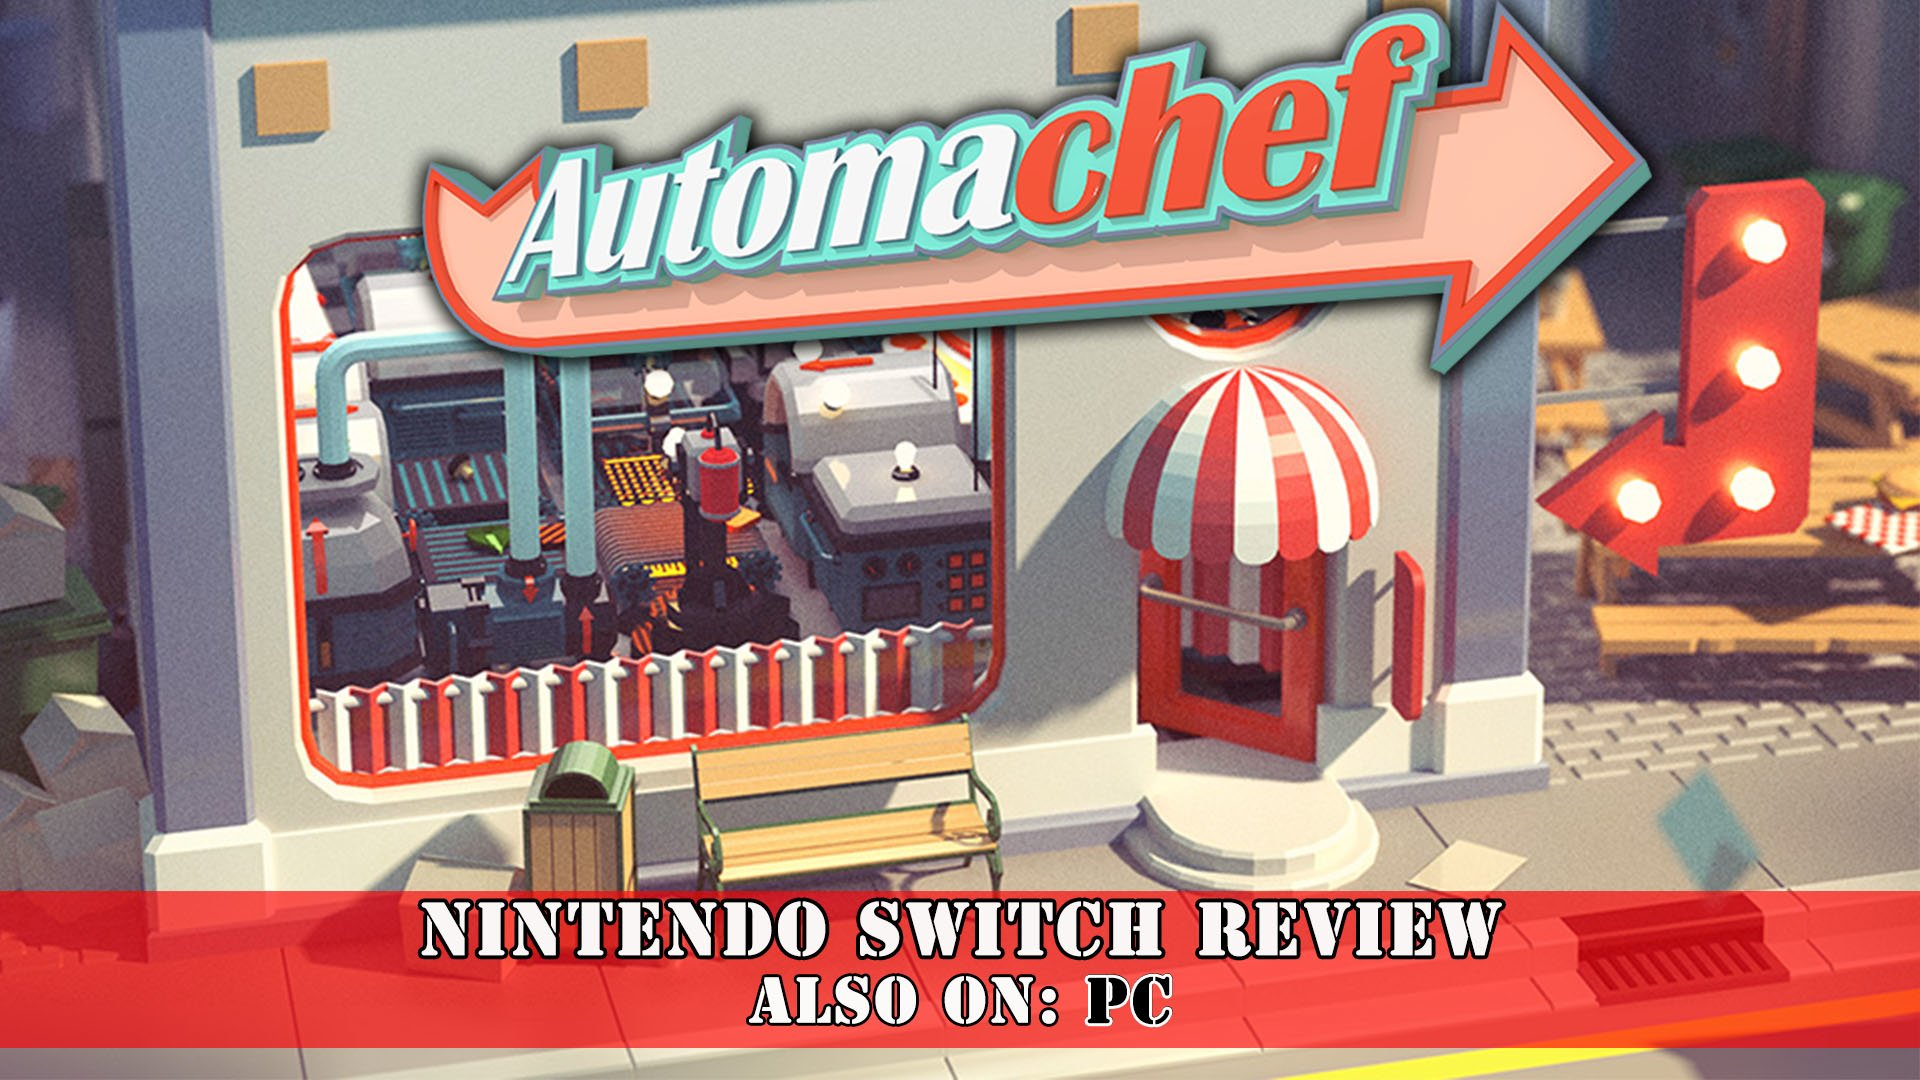 Automachef (Nintendo Switch) Review